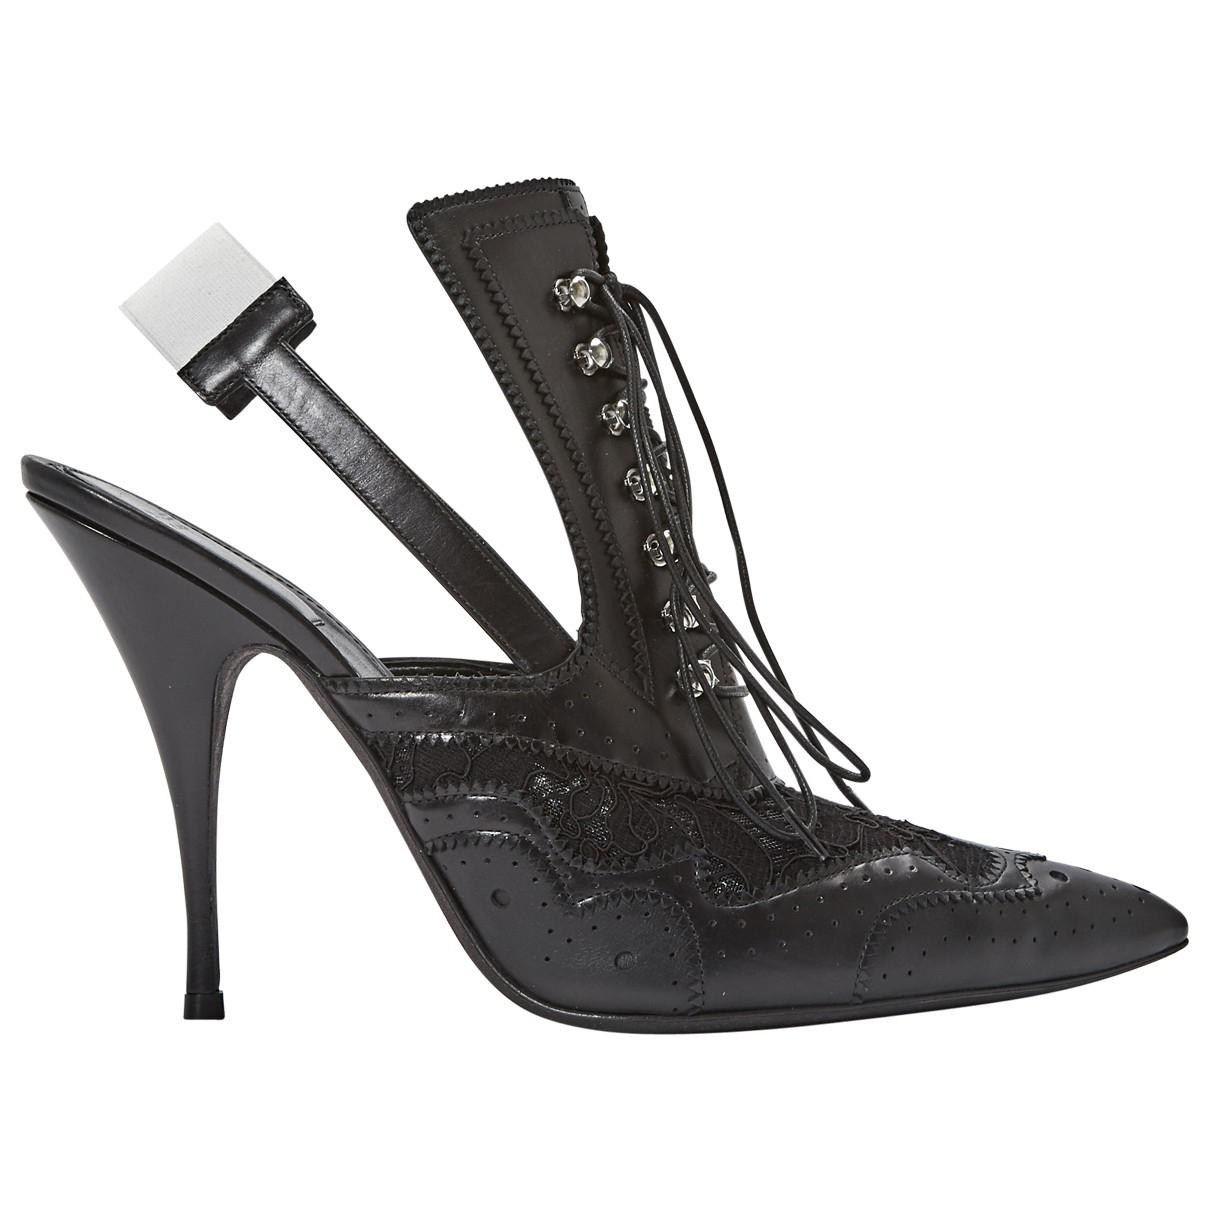 Pre-owned - Black High heel Givenchy HYWkV9ScqZ